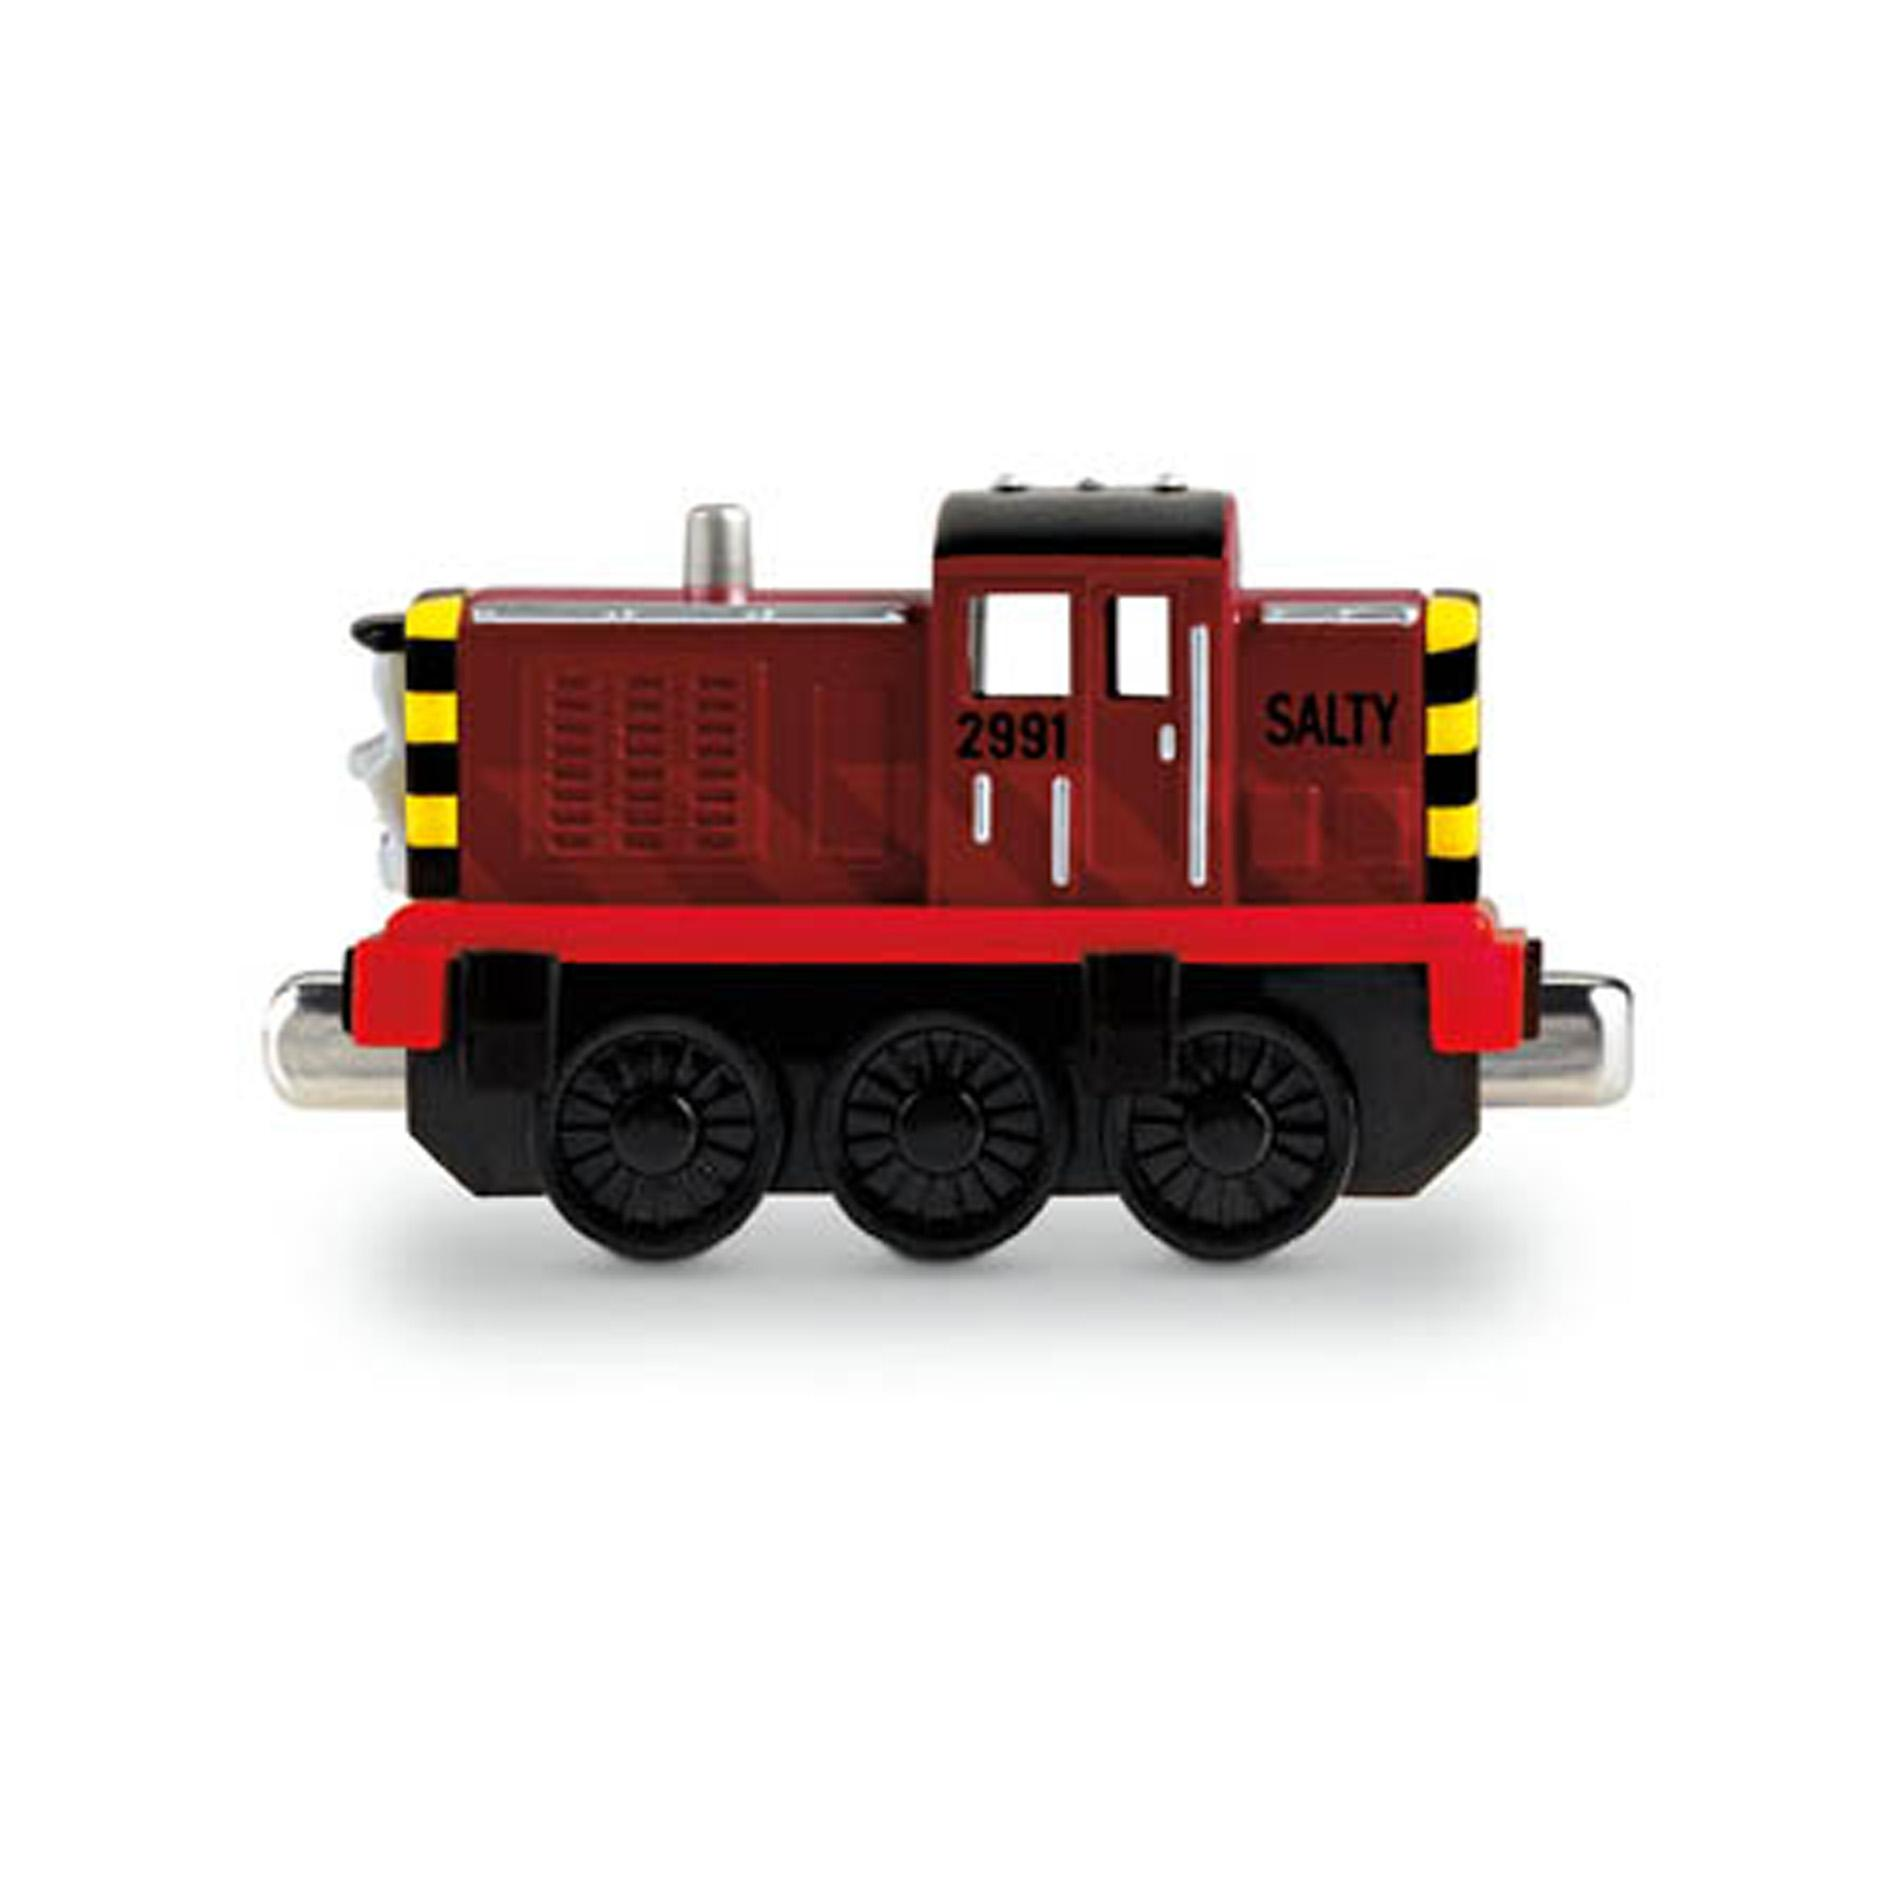 Thomas and Friends 'Salty's Catch of the Day' Toy Train Engine